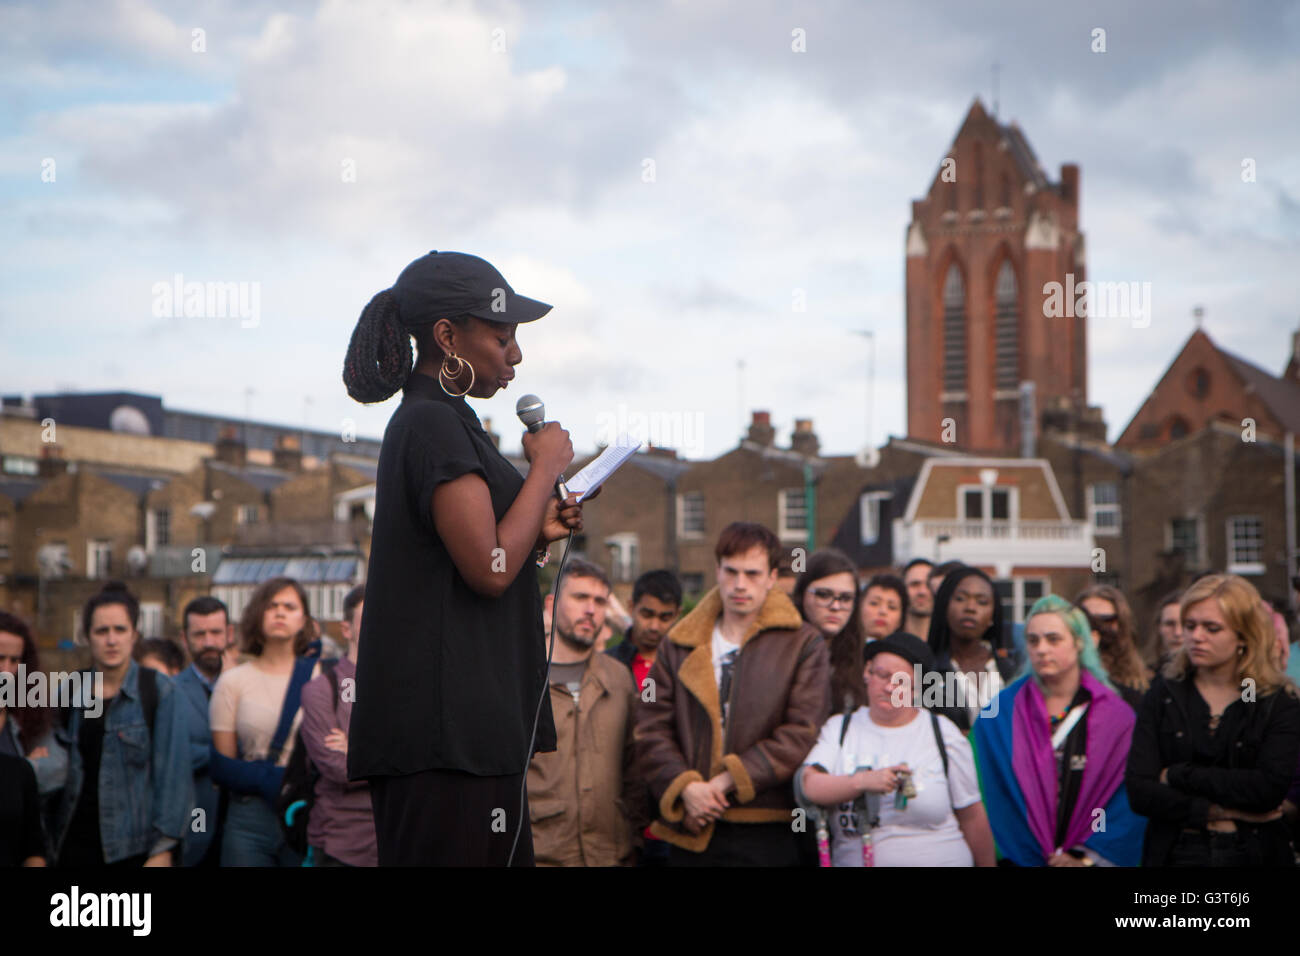 London, UK. 14th June, 2016. one of the organisers speaking Credit:  Zefrog/Alamy Live News - Stock Image